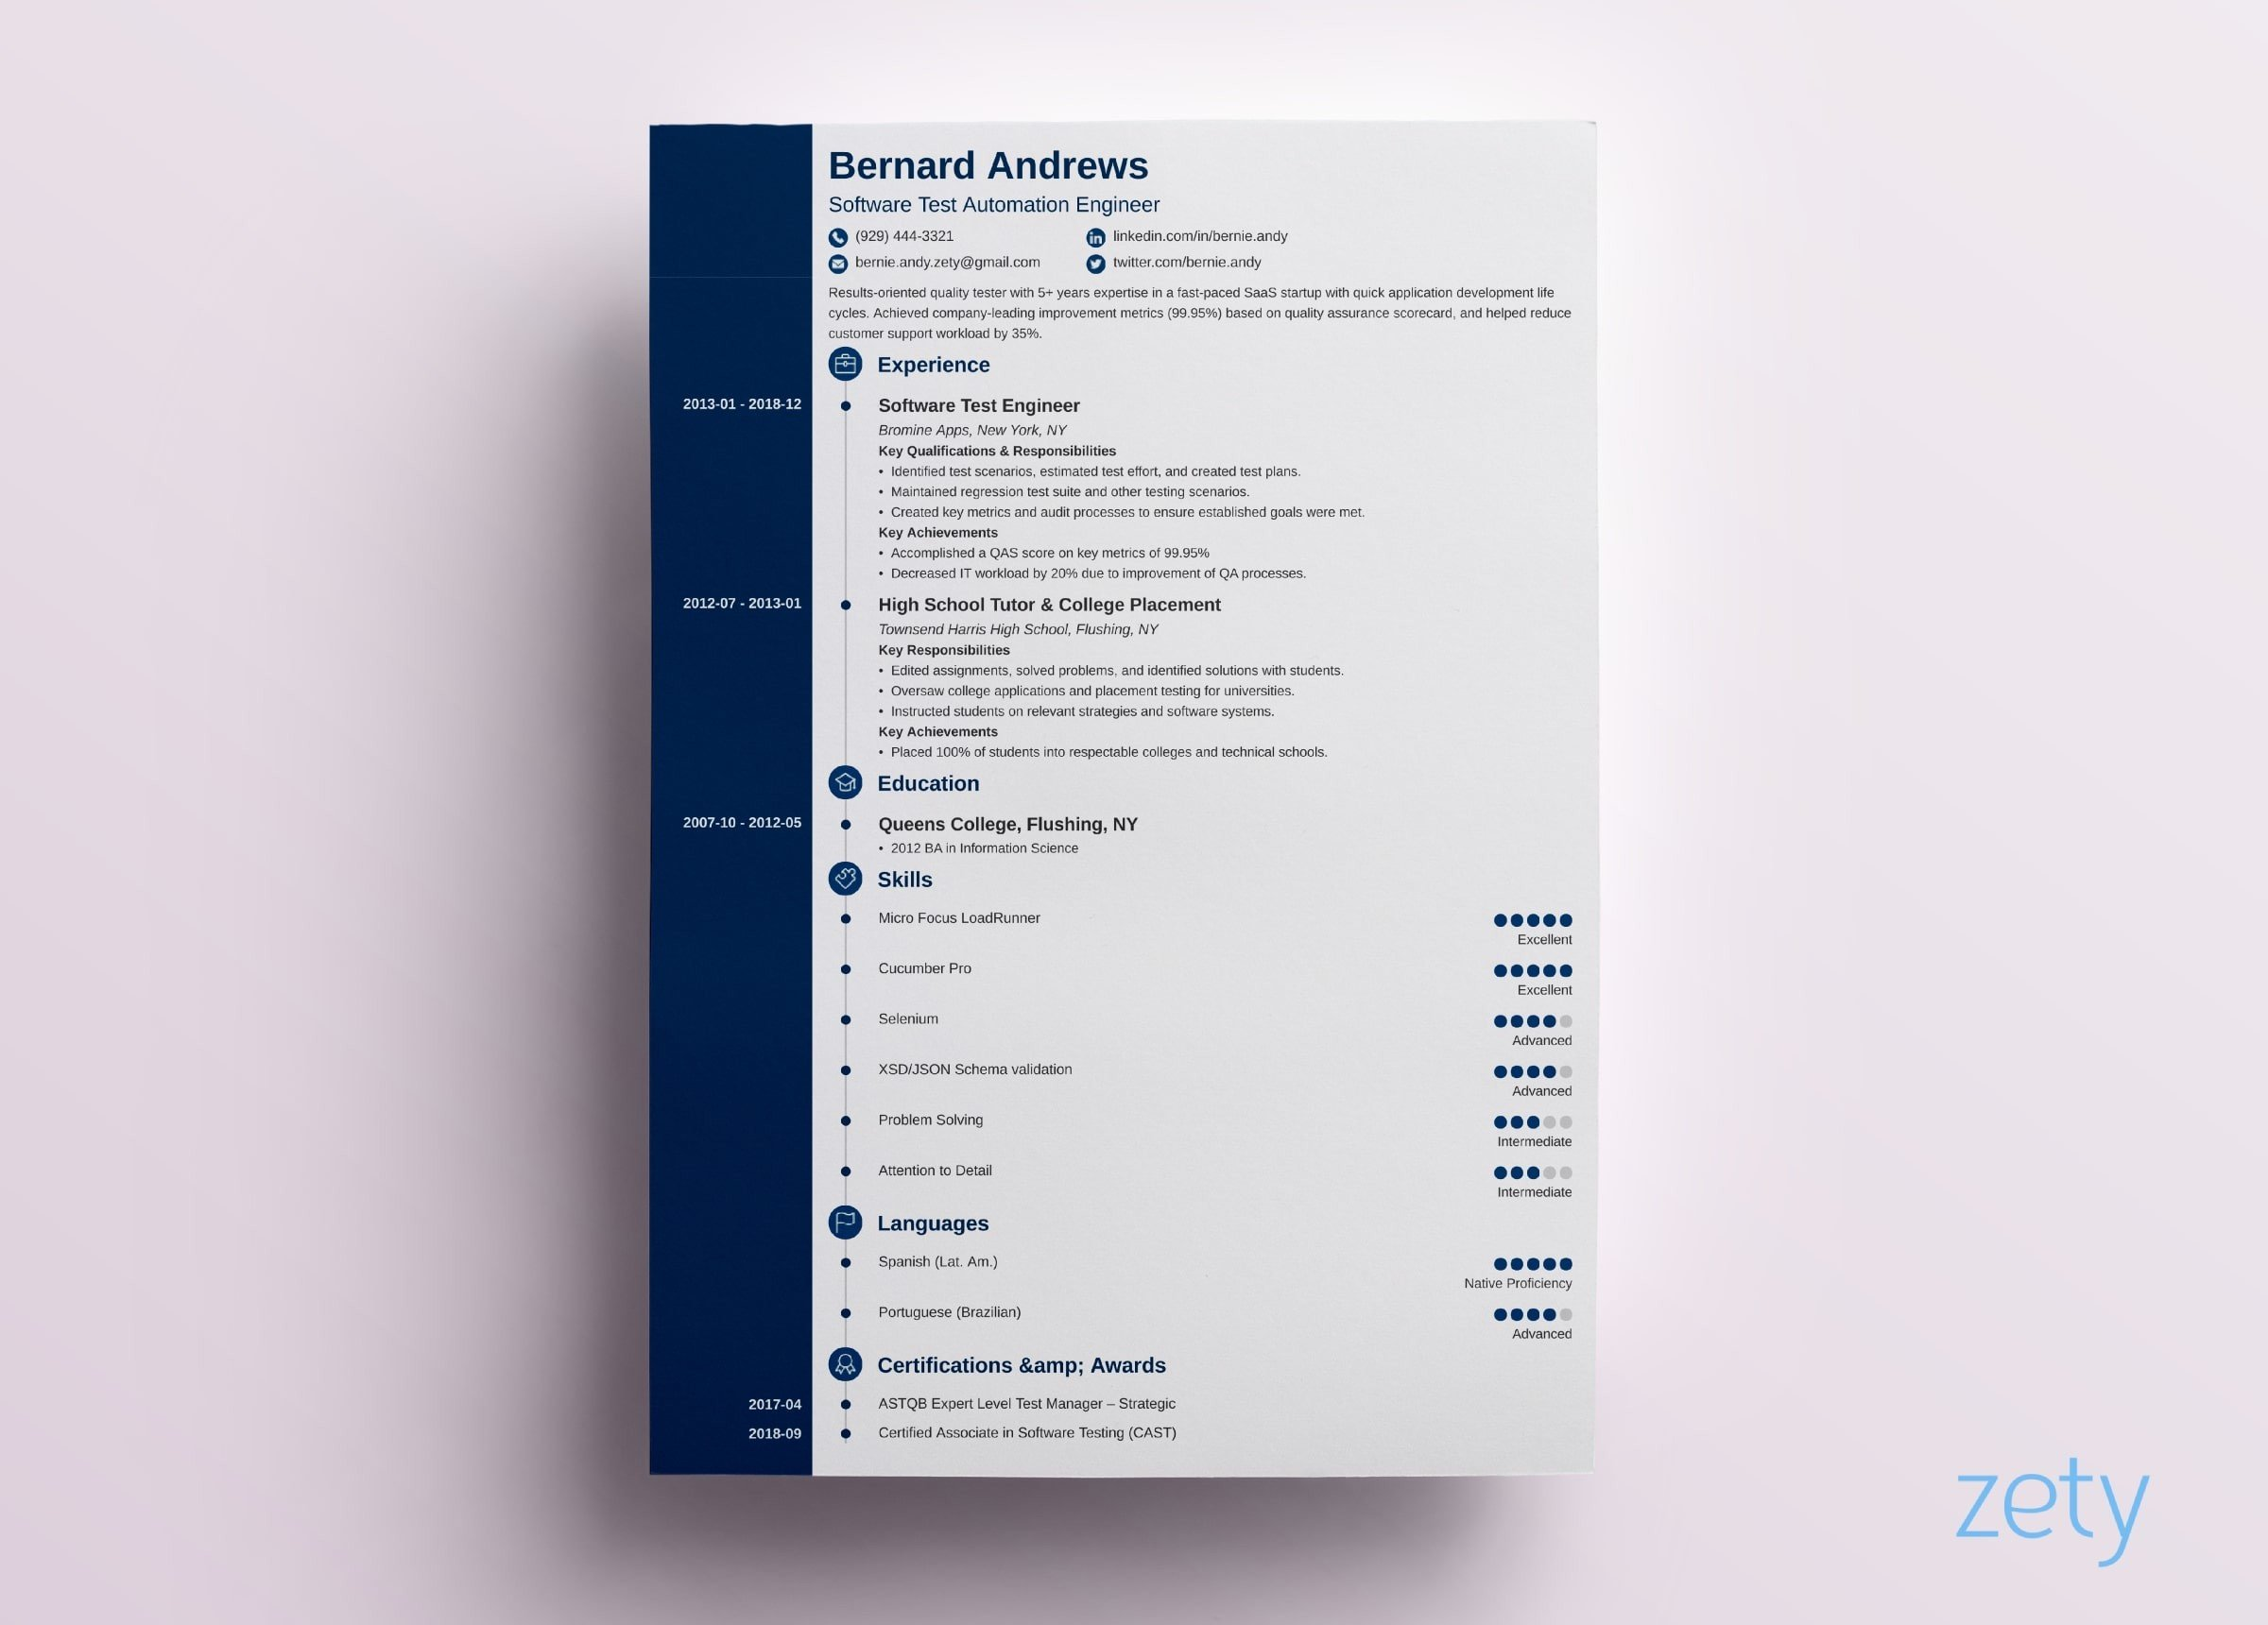 creative resume templates examples well designed concept healthcare marketing objective Resume Well Designed Resume Templates